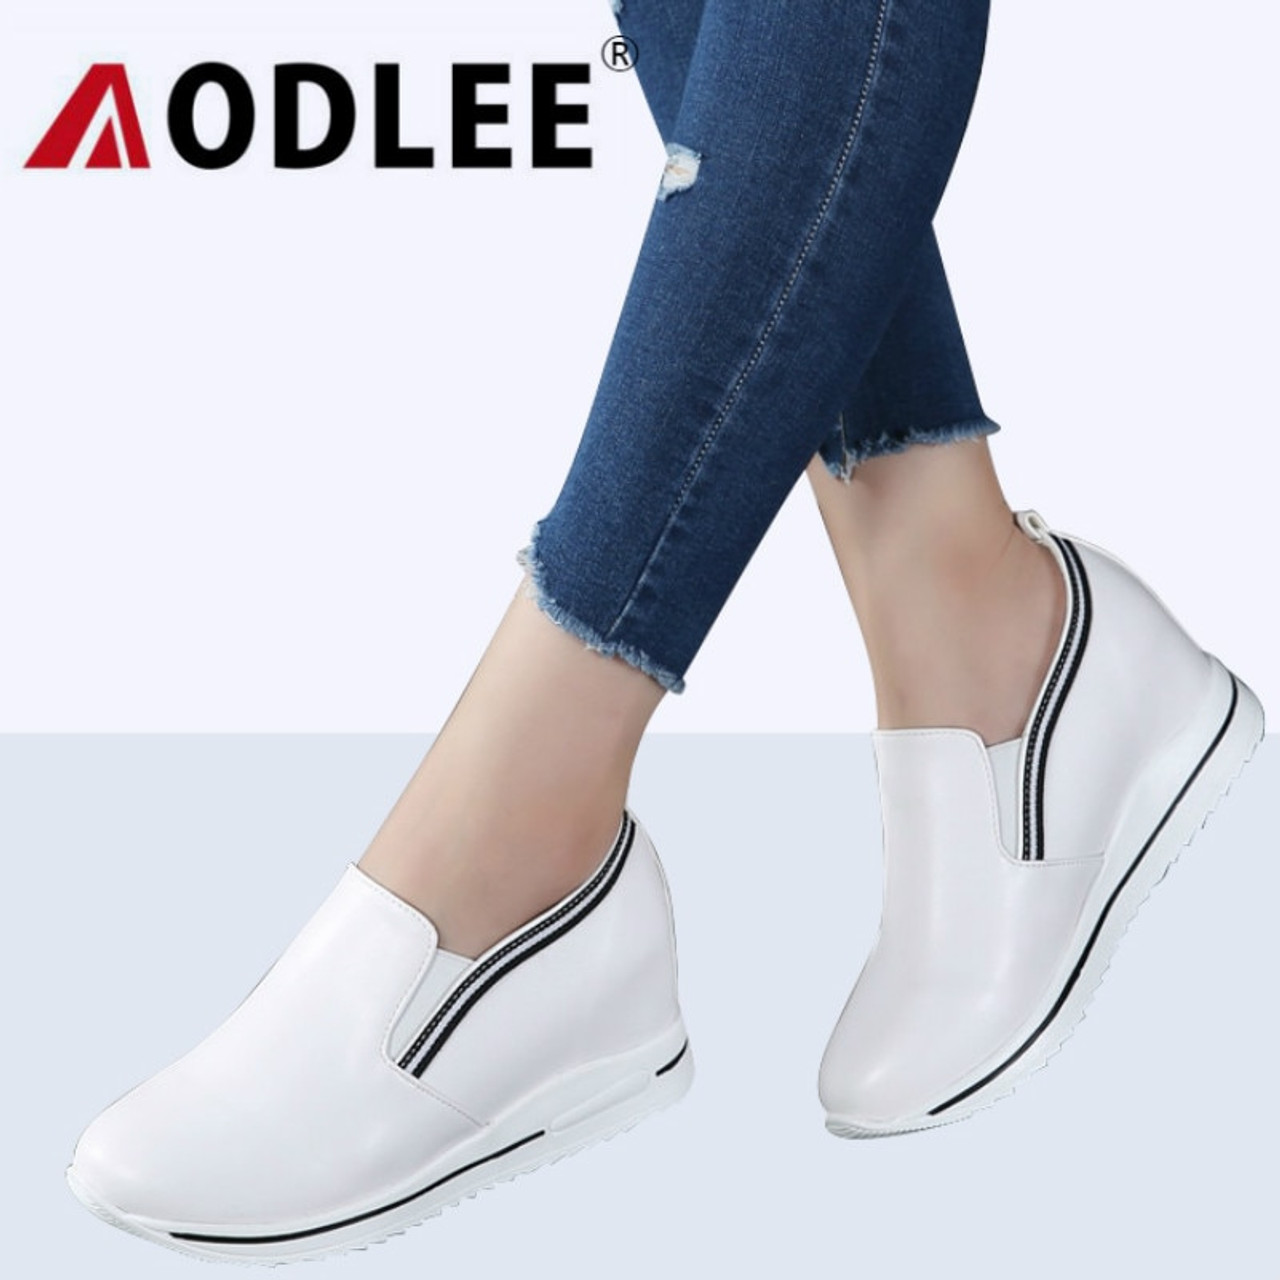 c9ad0eae8a59 AODLEE Increasing Flat Shoes Women Sneakers Fashion Platform Casual Shoes  Woman Genuine Leather Slip on Ladies ...